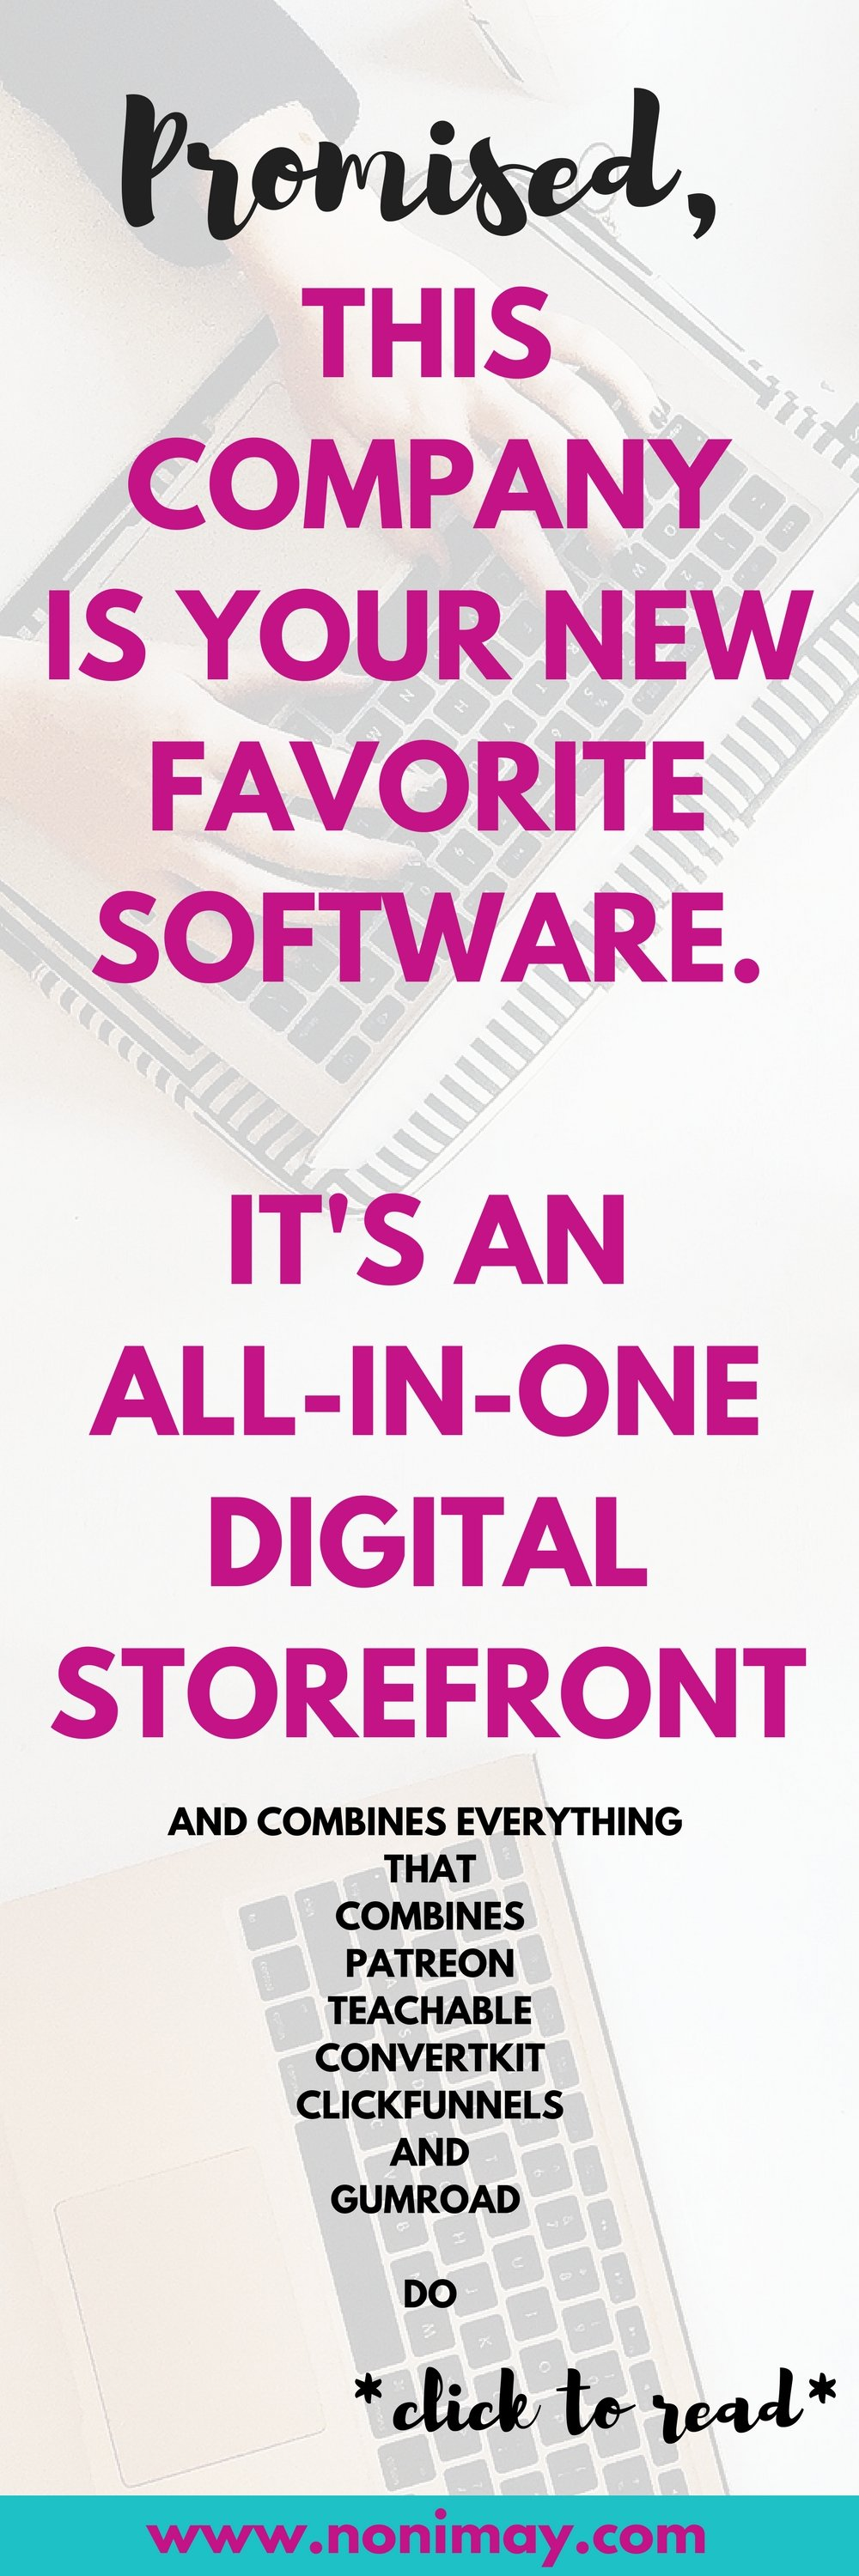 This company is your new favorite software. It's an all in one storefront to sell your courses, membership site, email marketing and more